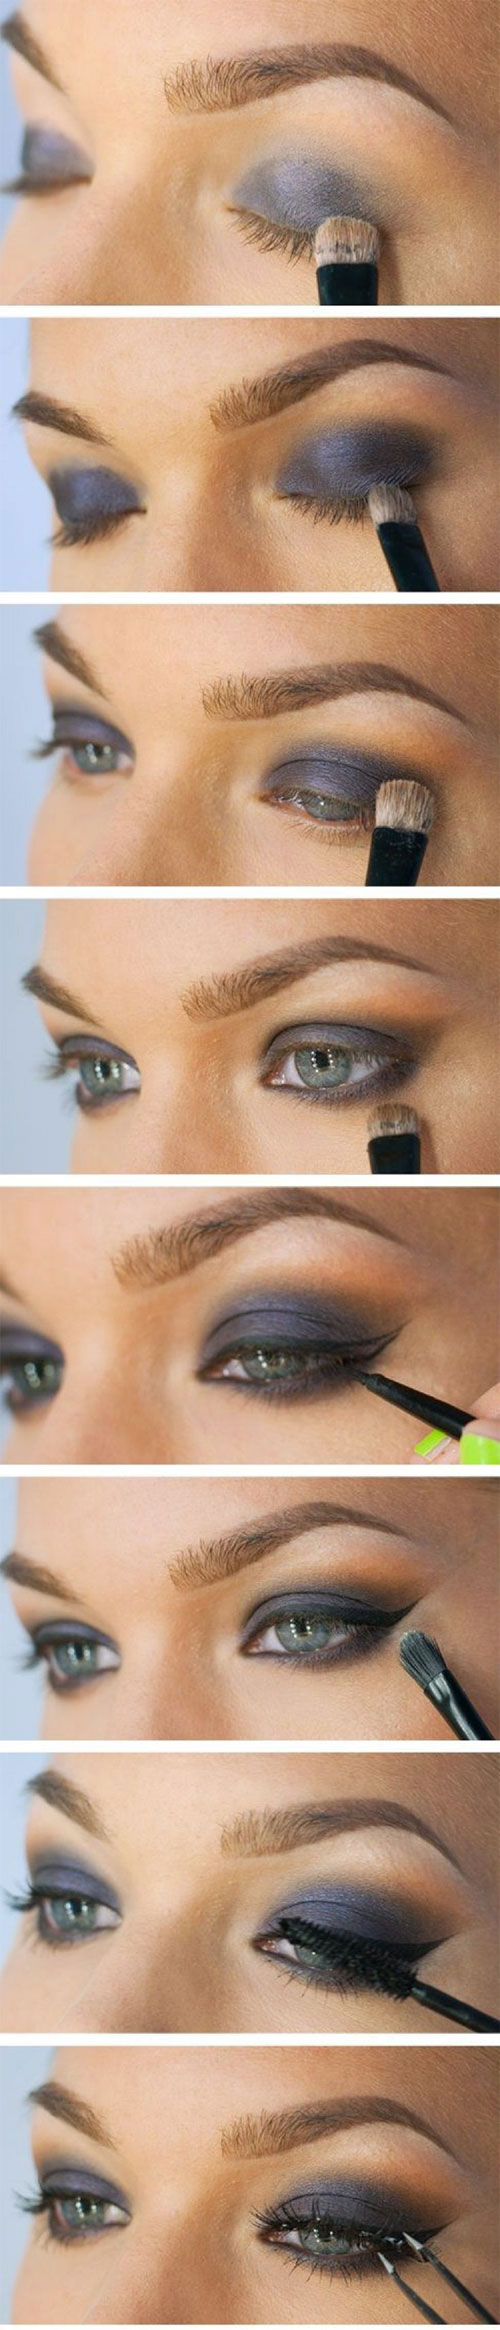 25-Spring-Makeup-Tutorial-2015-7